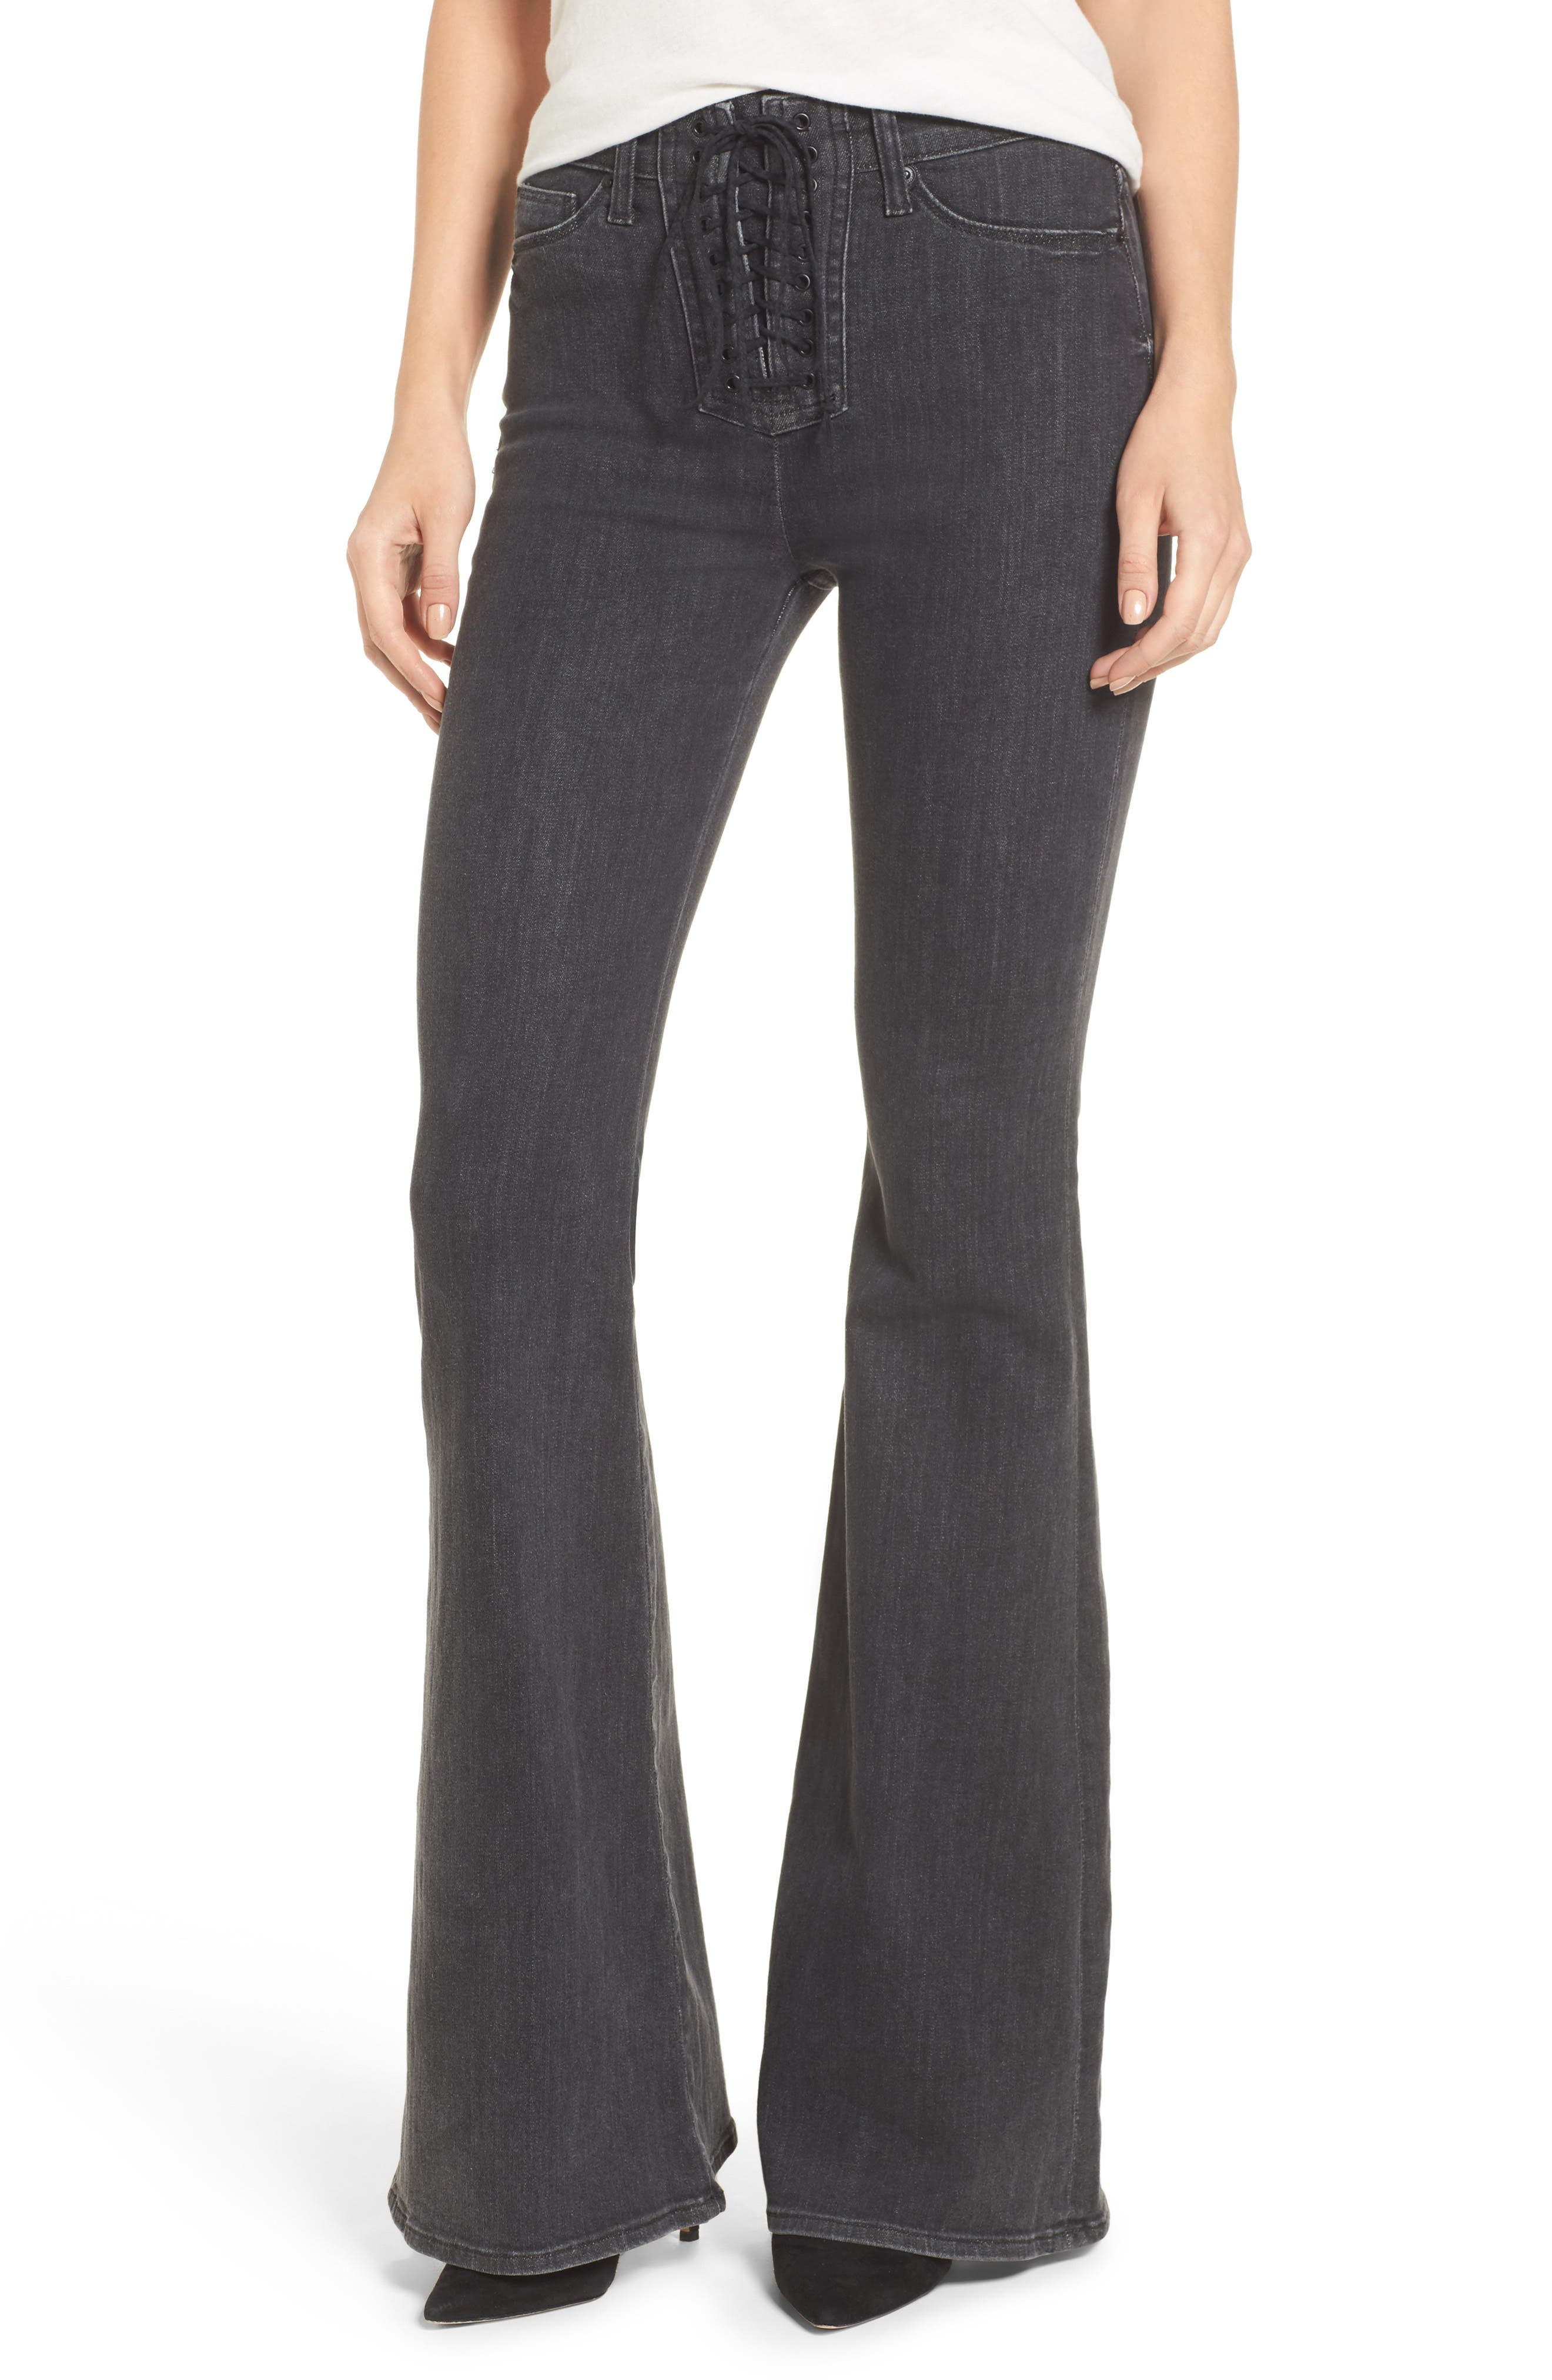 Bullocks High Waist Lace-Up Flare Jeans,                         Main,                         color, 064